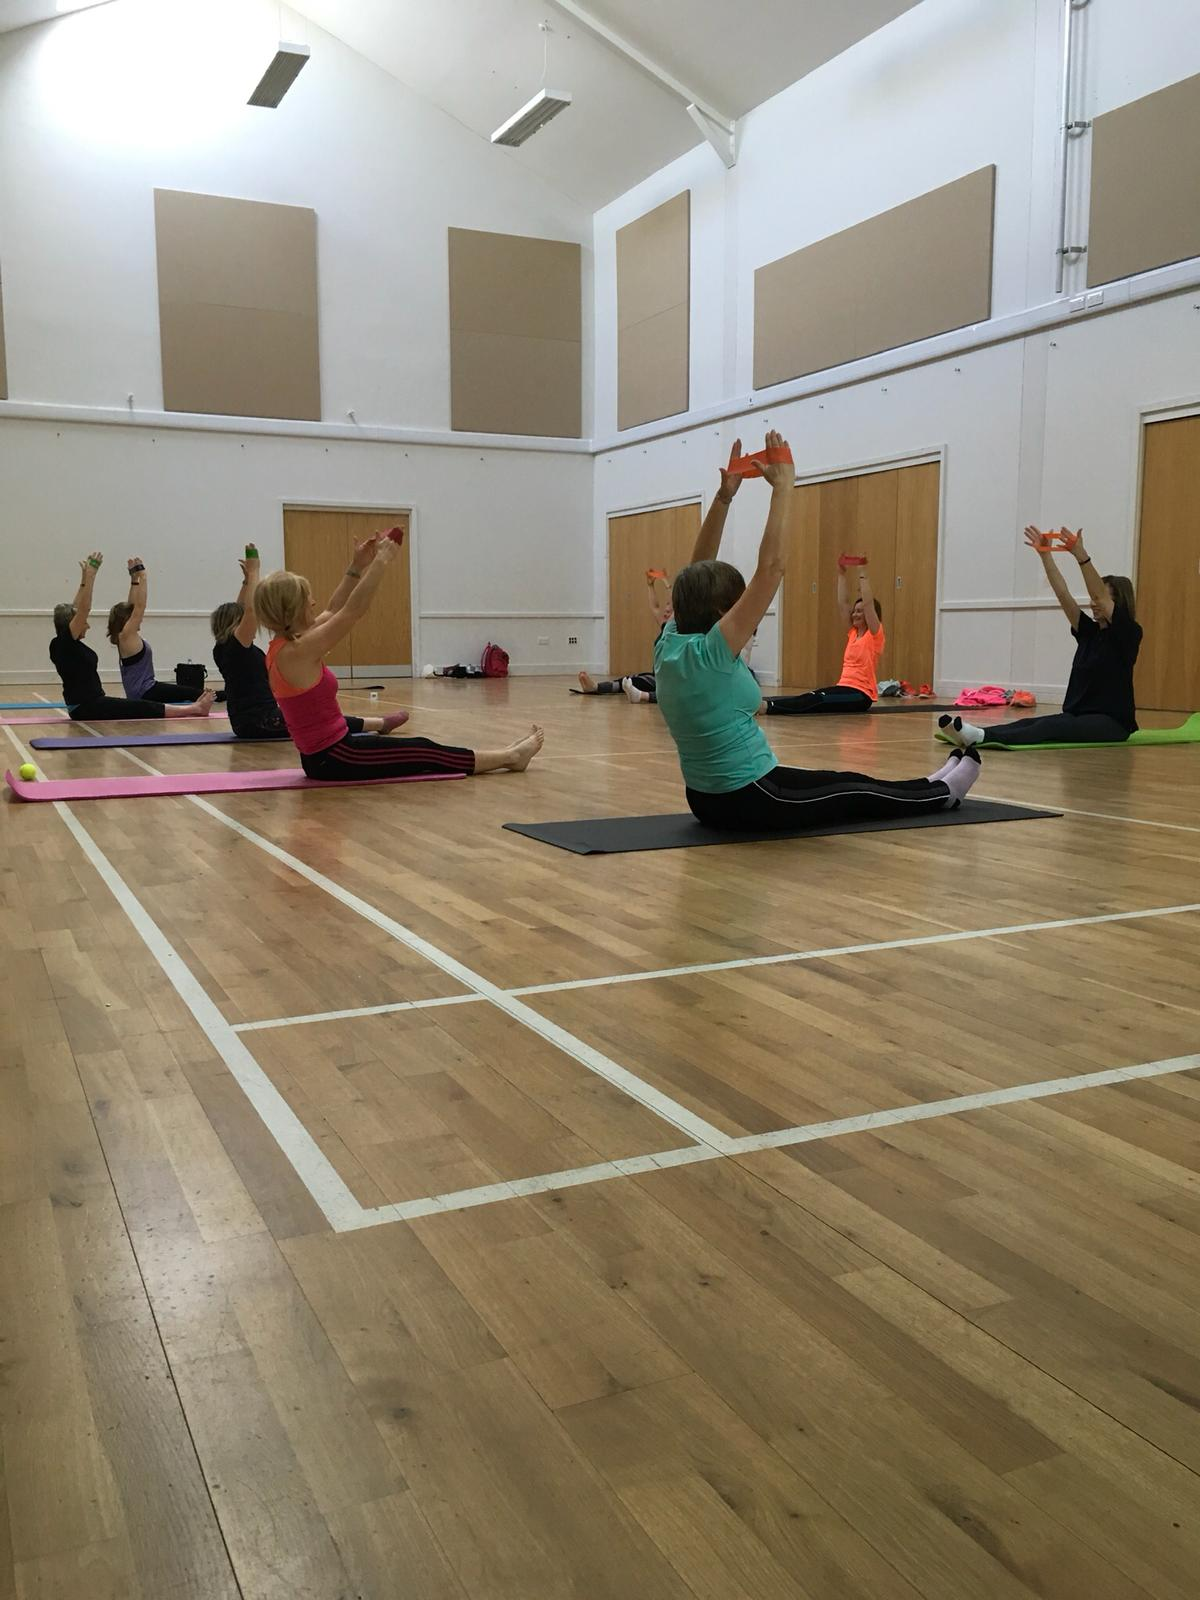 Students taking part in Pilates class.